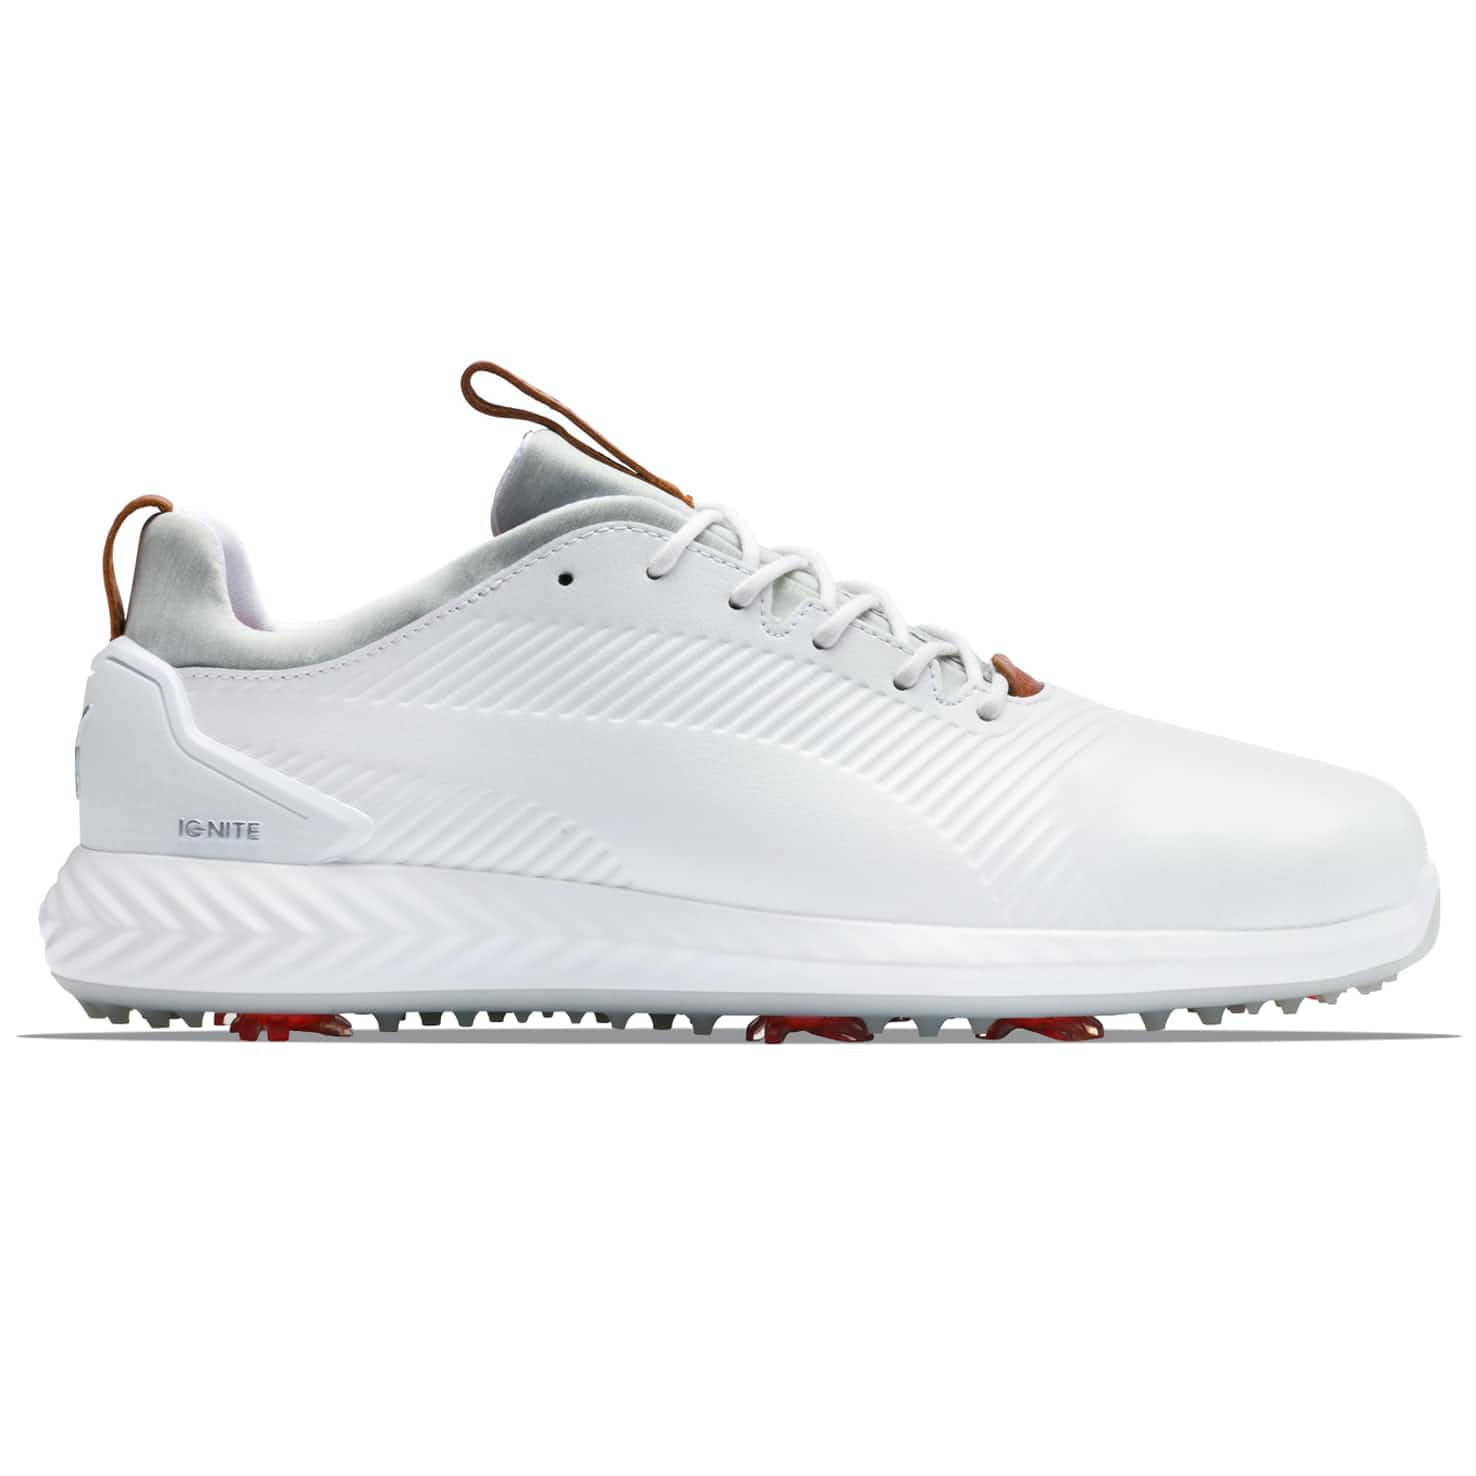 Ignite PWRADAPT Leather 2.0 White/White - SS20